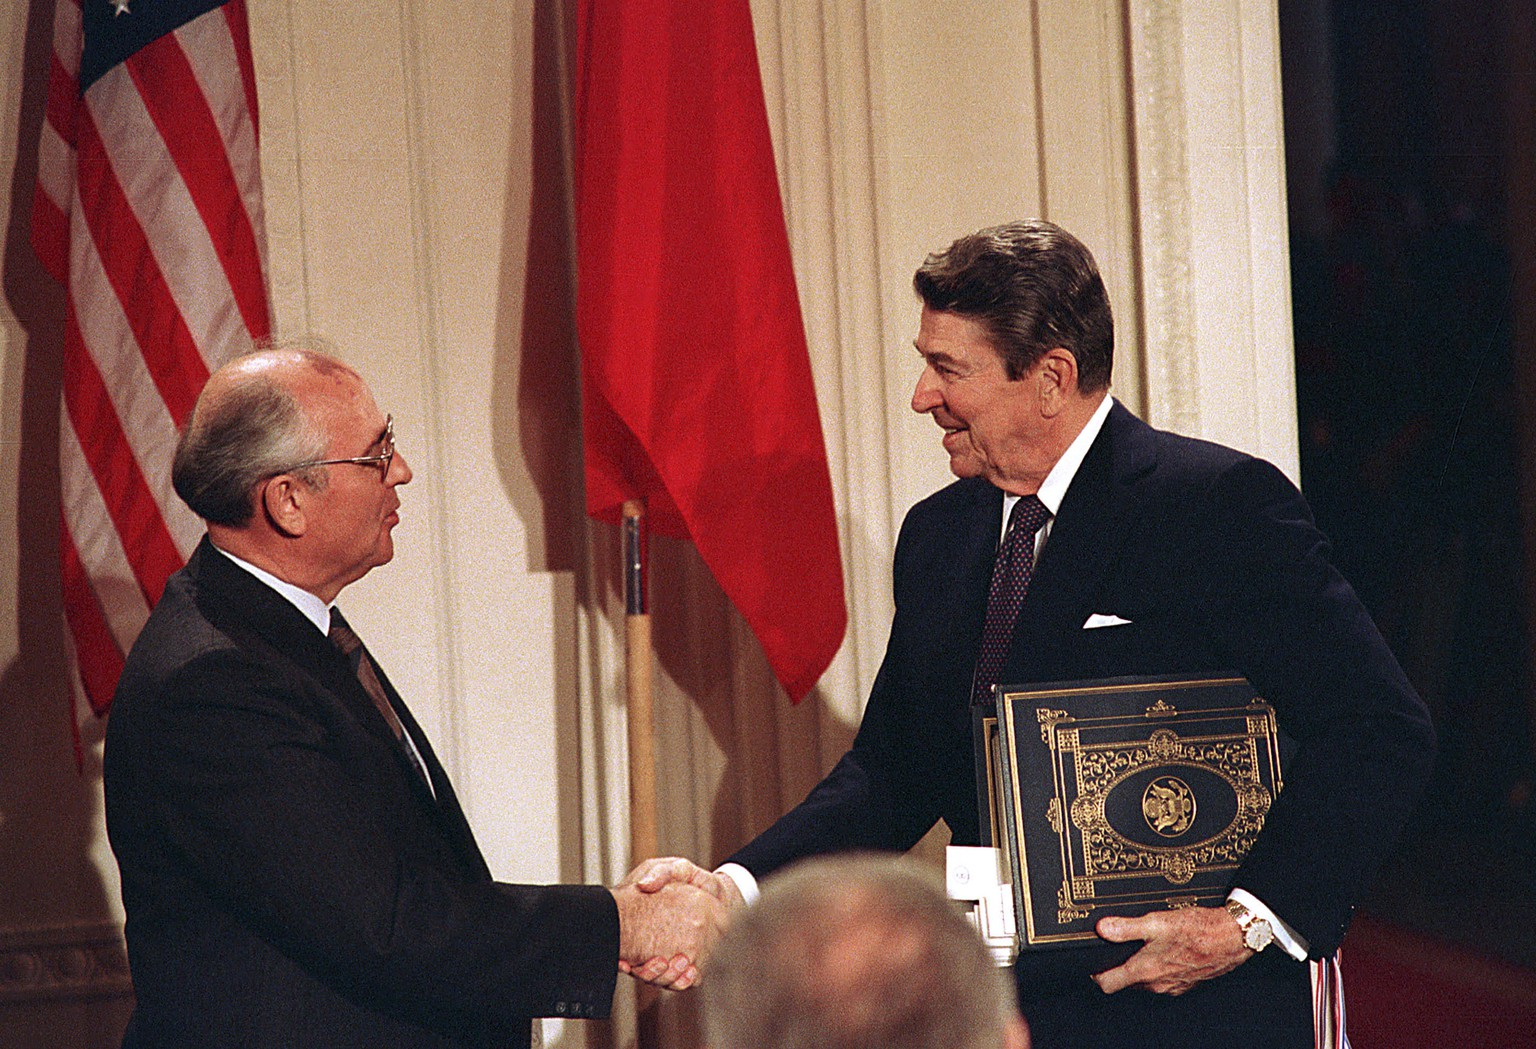 "FILE - Int this Dec. 8, 1997, file photo, U.S. President Ronald Reagan, right, shakes hands with Soviet leader Mikhail Gorbachev after the two leaders signed the Intermediate Range Nuclear Forces Treaty to eliminate intermediate-range missiles during a ceremony in the White House East Room in Washington. In an escalation of tensions, the Obama administration accused Russia on July 28, 2014, of conducting tests in violation of a 1987 nuclear missile treaty, calling the breach ""a very serious matter"" and going public with allegations that have simmered for some time. The treaty confrontation comes at a highly strained time between President Barack Obama and Russian President Vladimir Putin over Russia's intervention in Ukraine and Russia's grant of asylum to National Security Agency leaker Edward Snowden.(AP Photo/Bob Daugherty, File)"